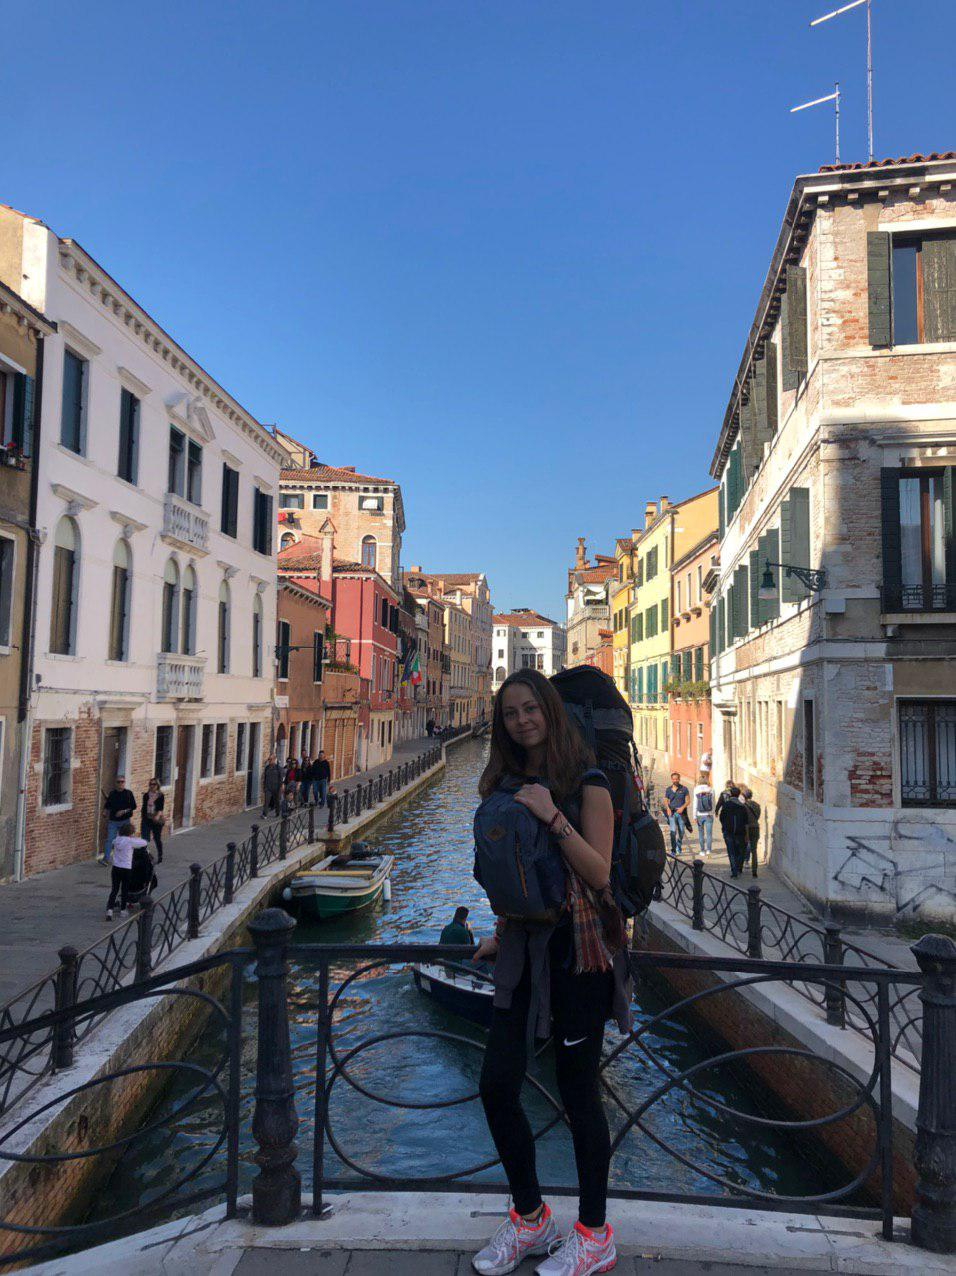 Frieda Krukenkamp auf Interrail-Reise, hier in Venedig